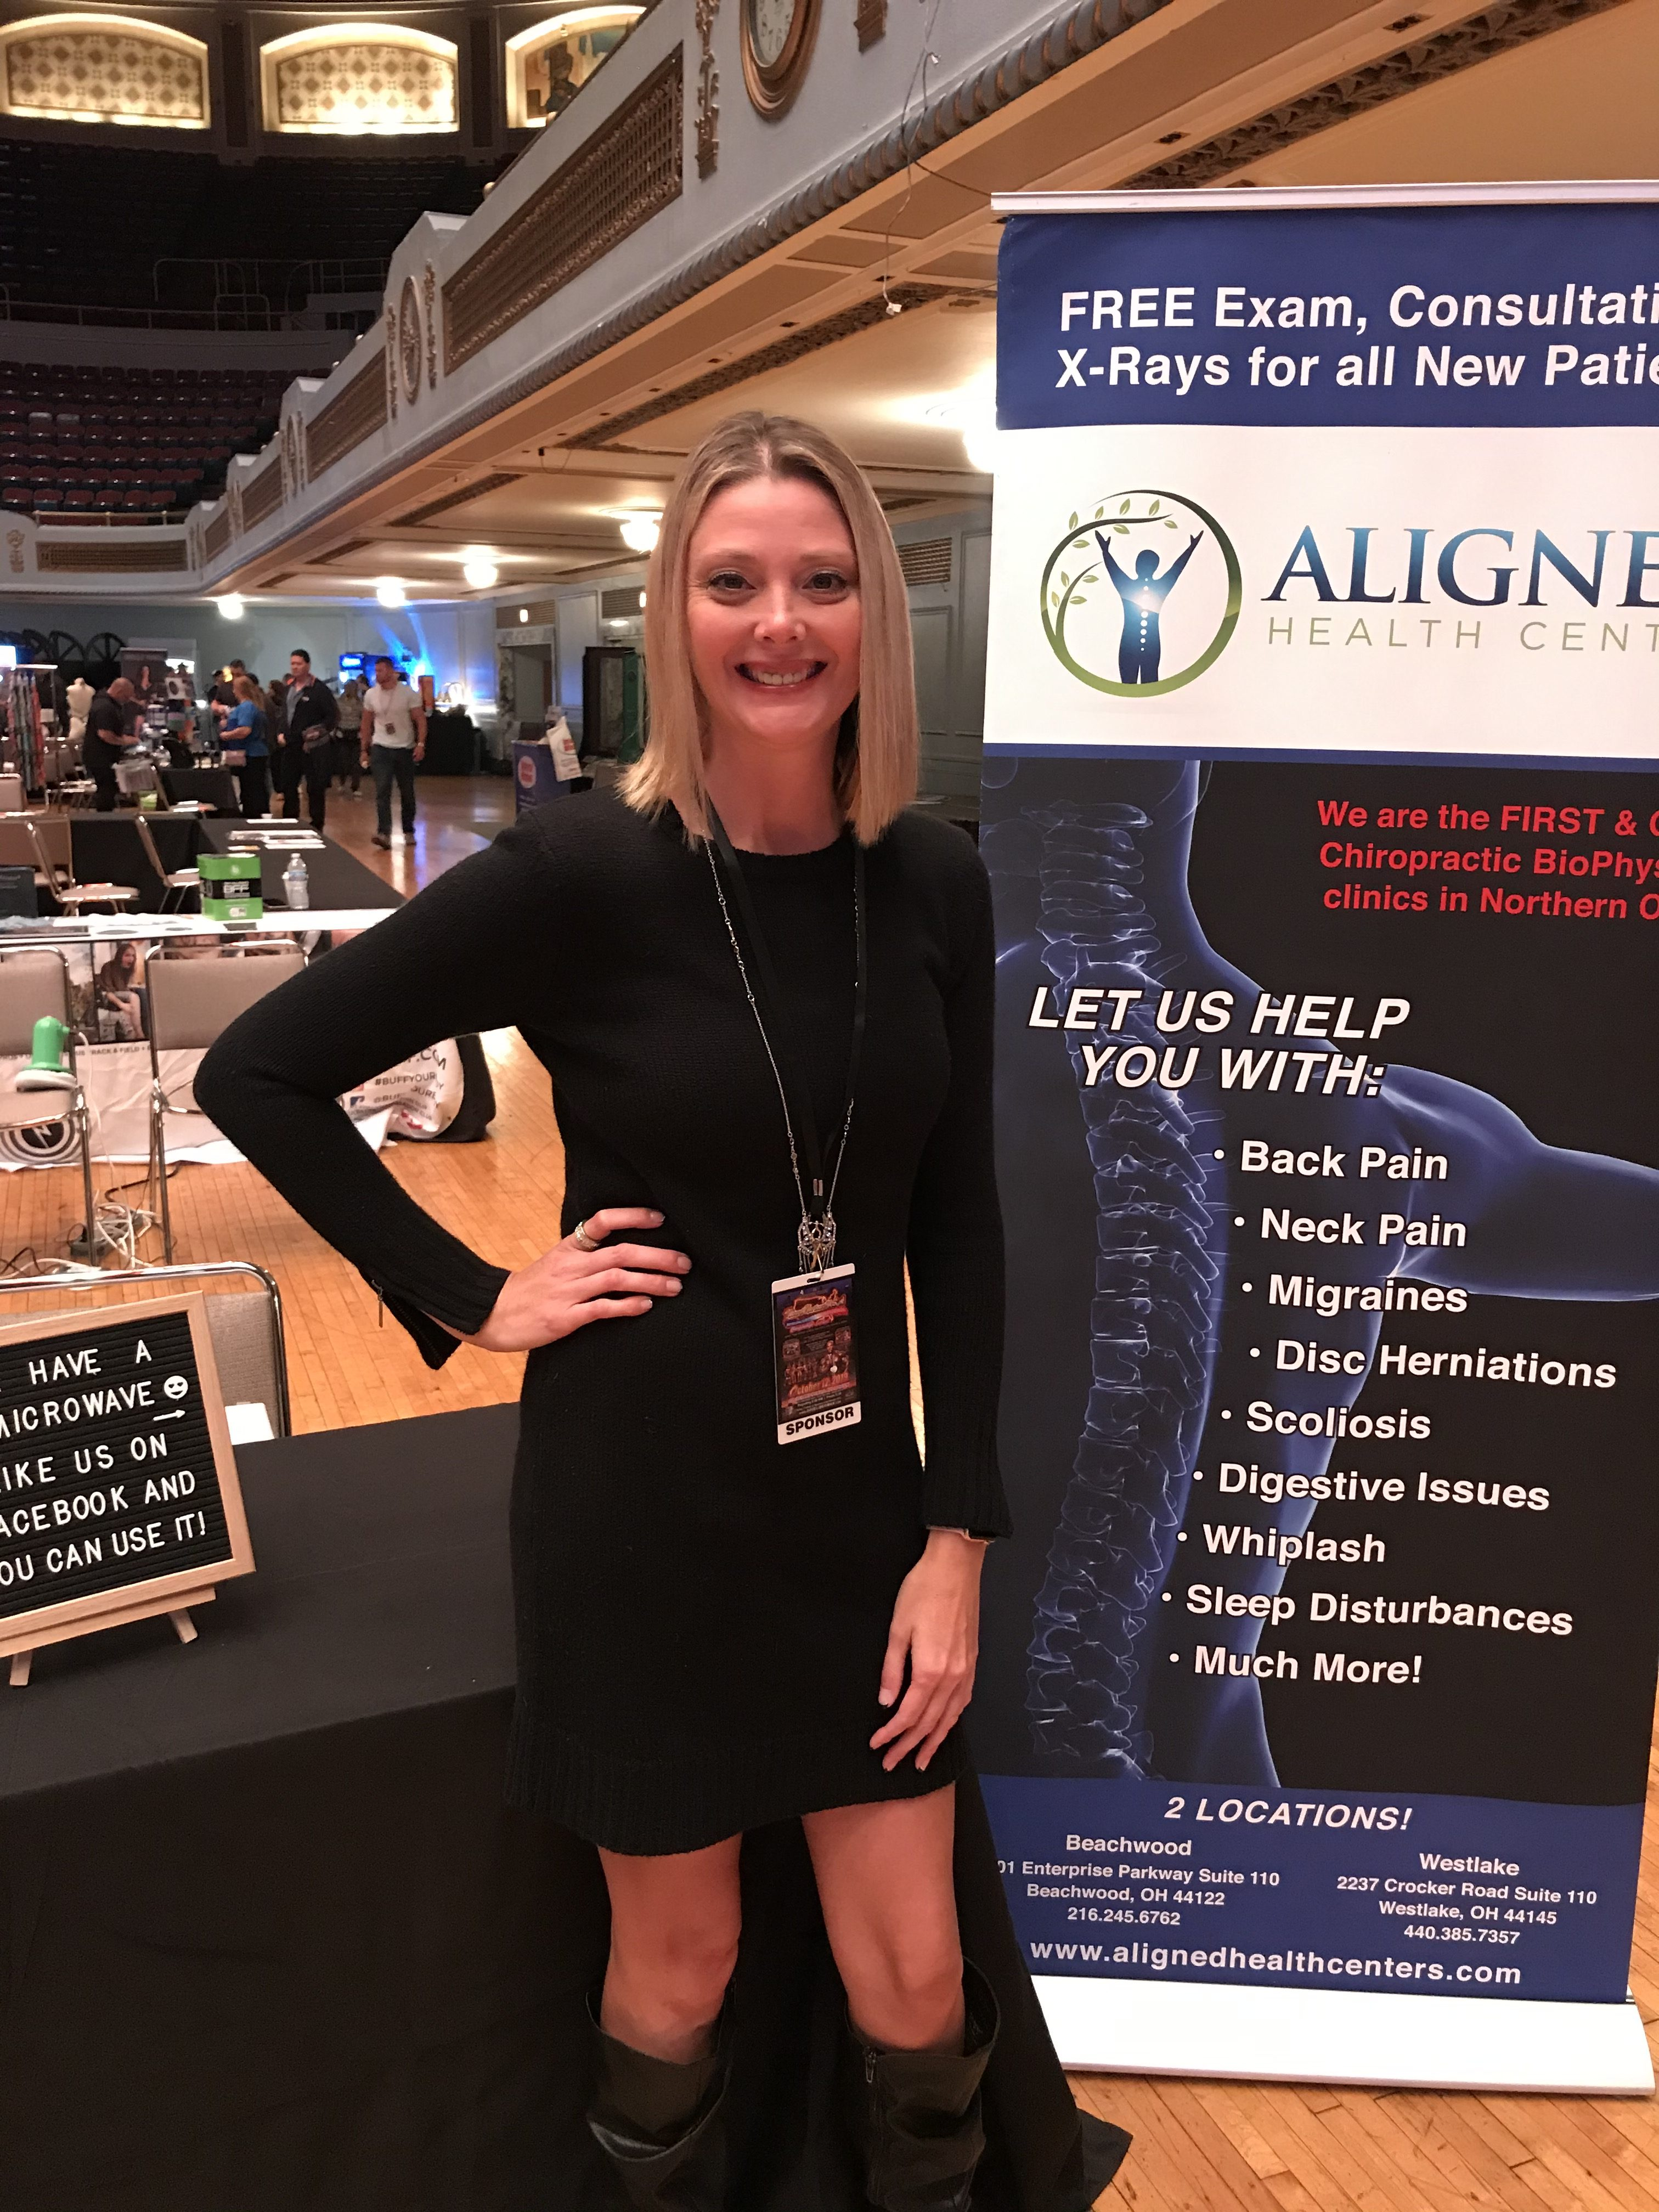 So excited to say I worked at my first body building competition! I had the opportunity to represent Aligned Health Center at the 2019 Natural Northern USA Championship and Expo. What amazing dedication!!